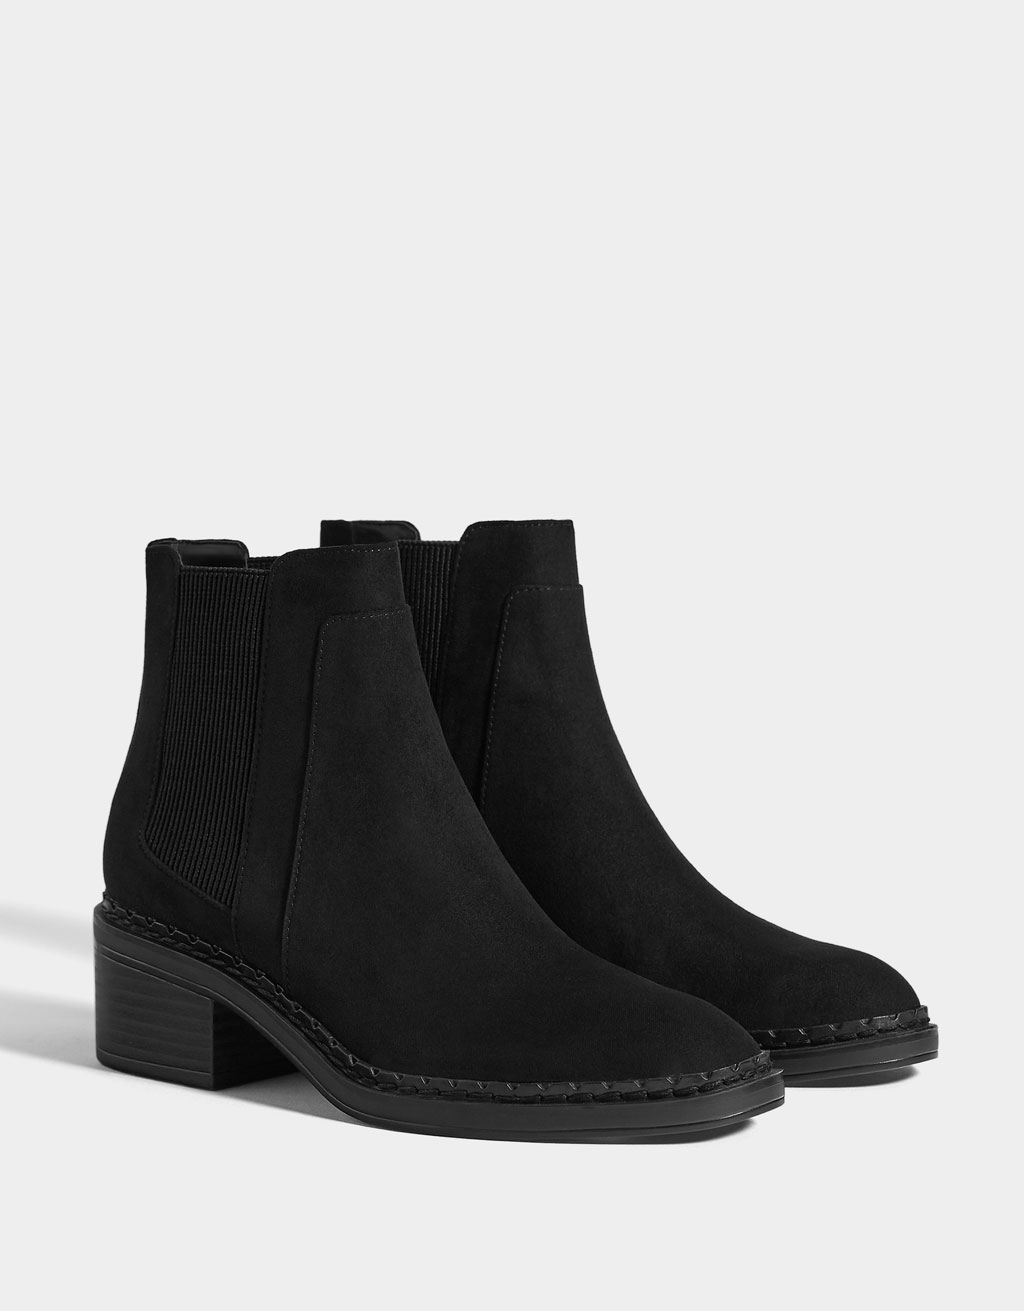 Low-heel ankle boots with elastic panels